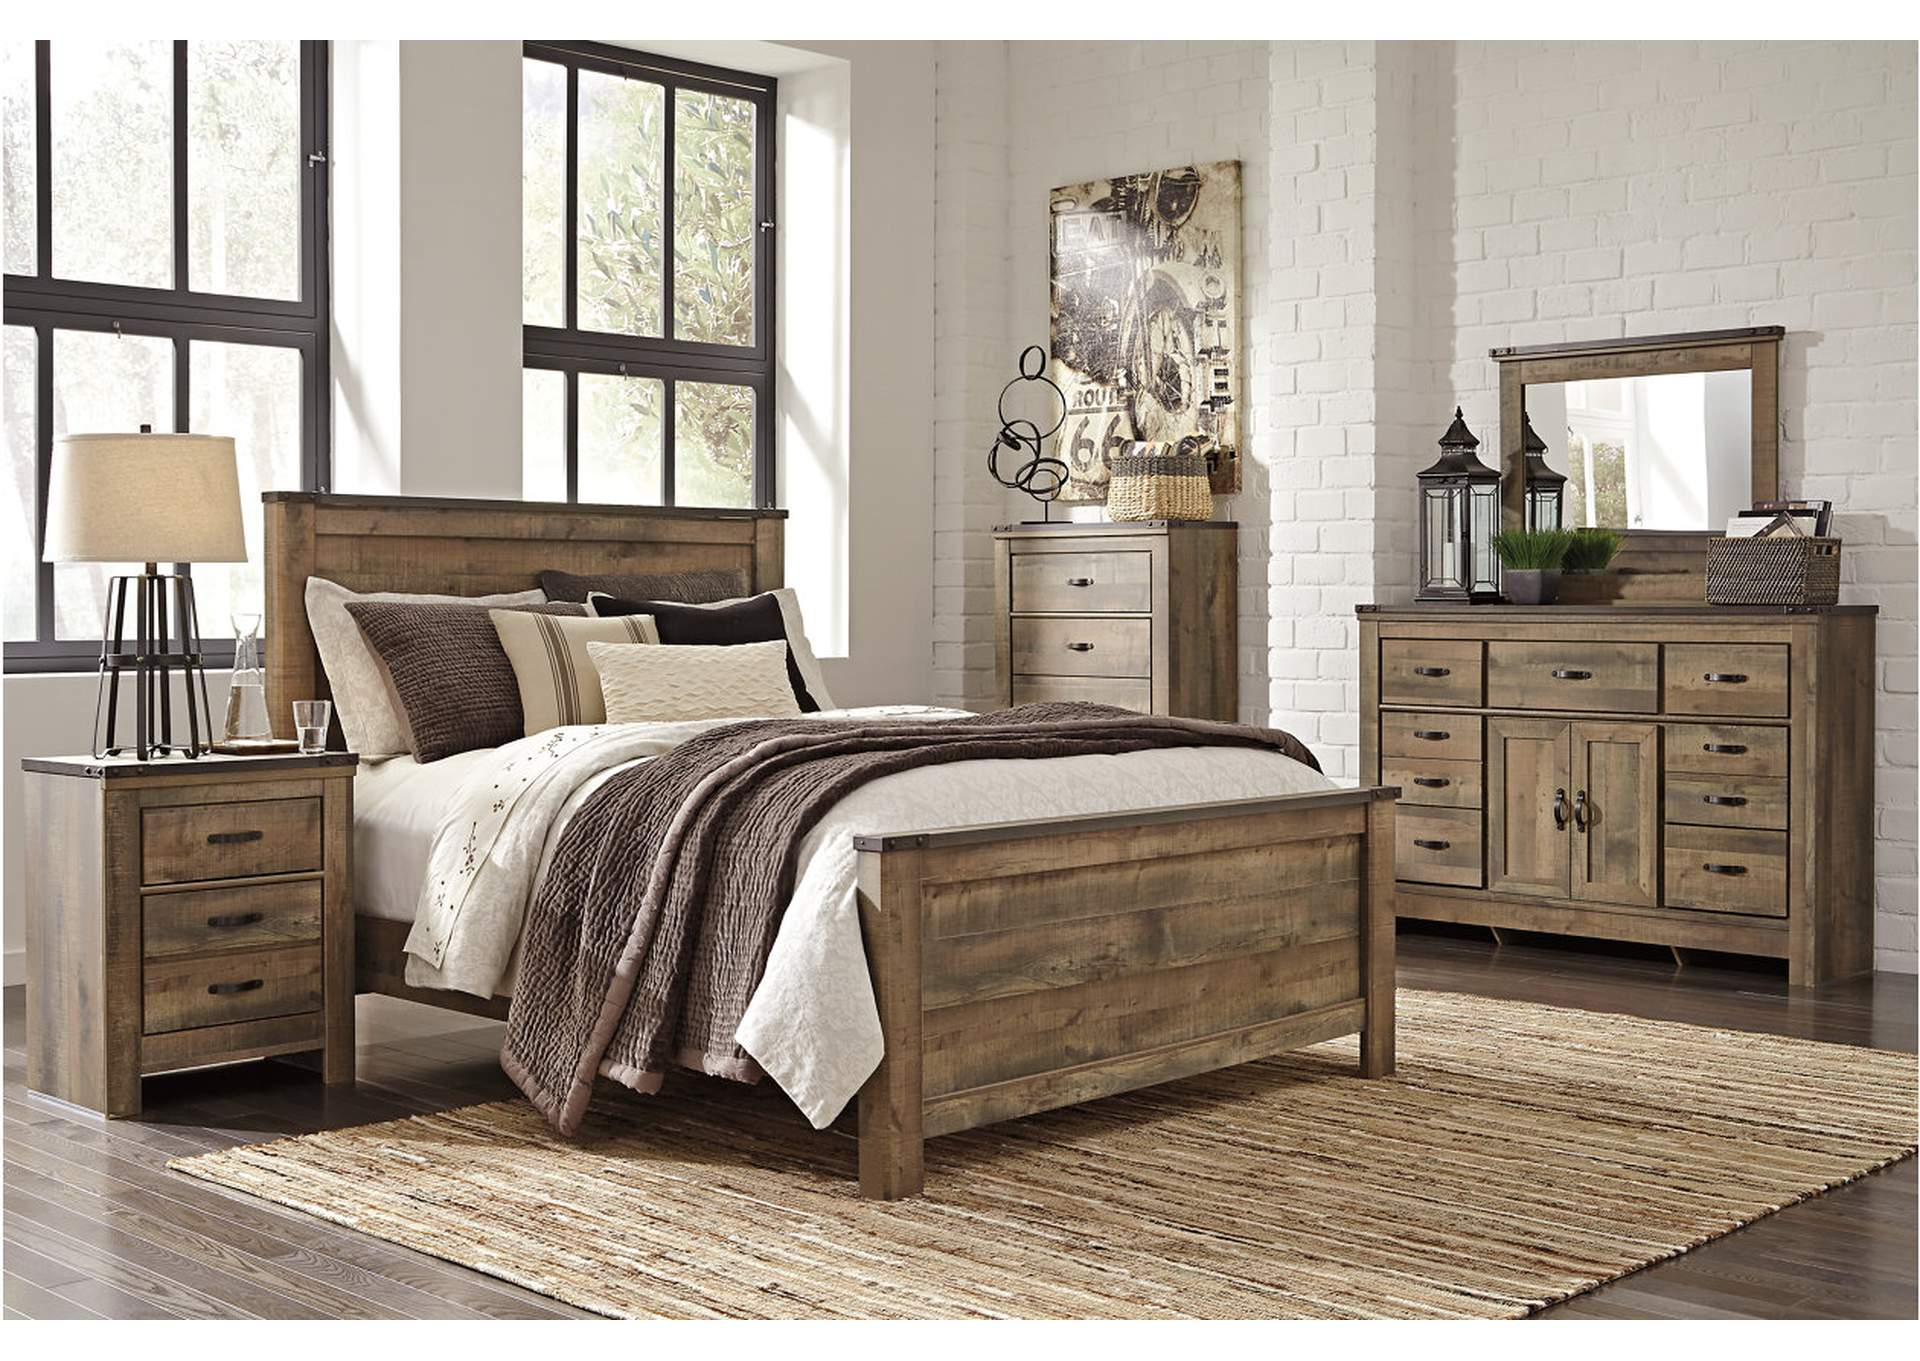 All Brands Furniture Edison Nj Trinell King Panel Bed W Dresser Mirror And Five Drawer Chest